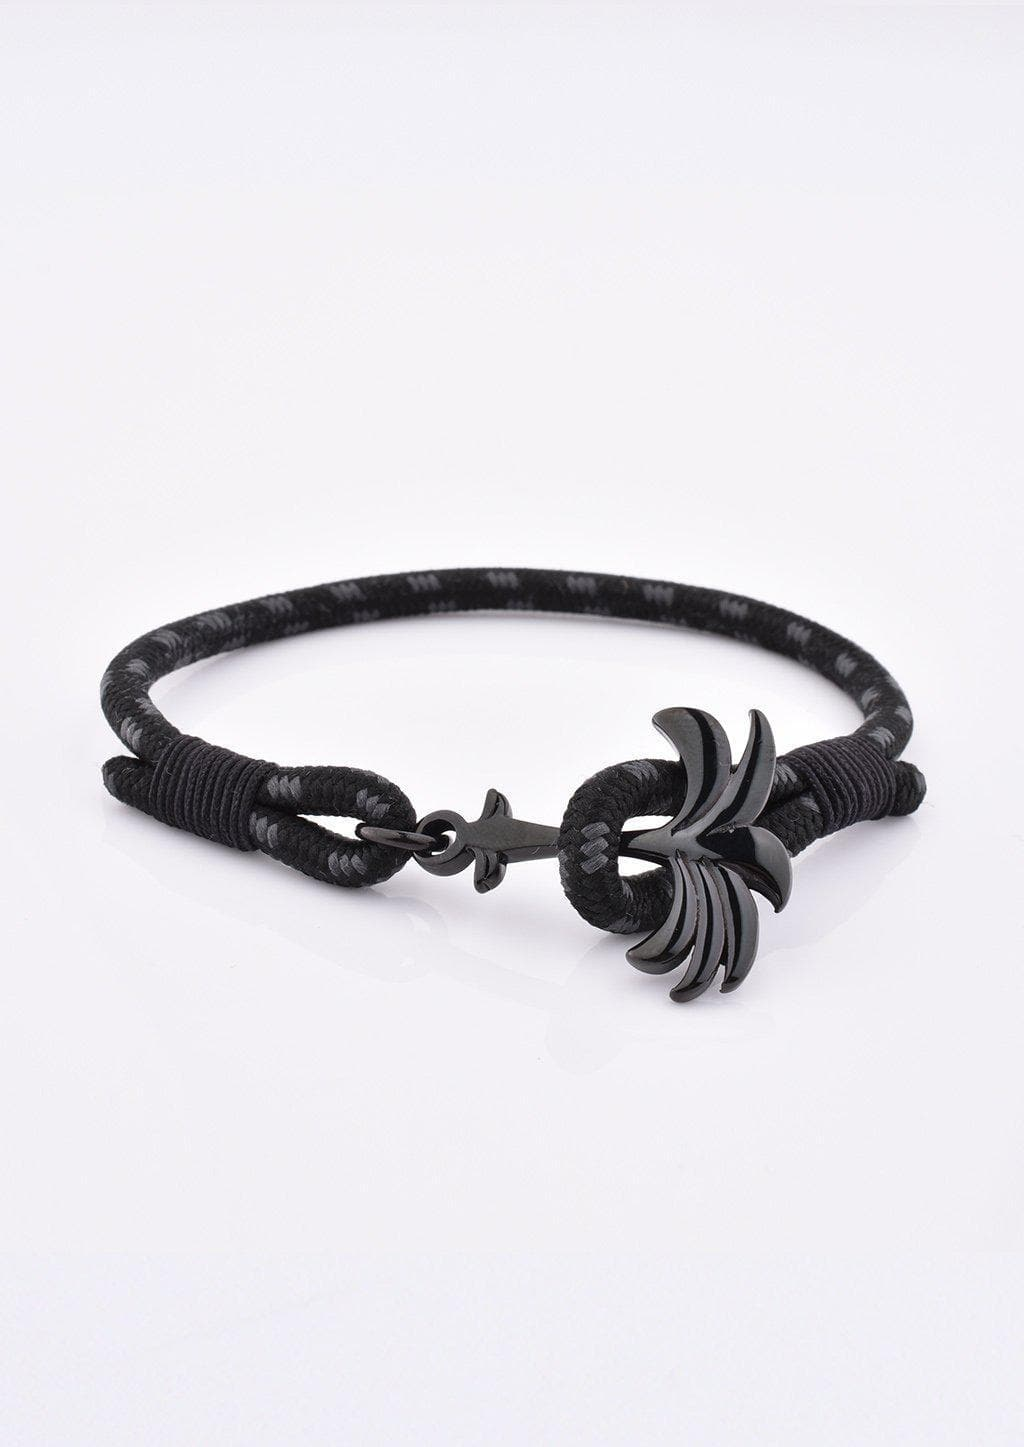 Phantom Black - Single - Season two Palm anchor bracelet with black and grey nylon band.